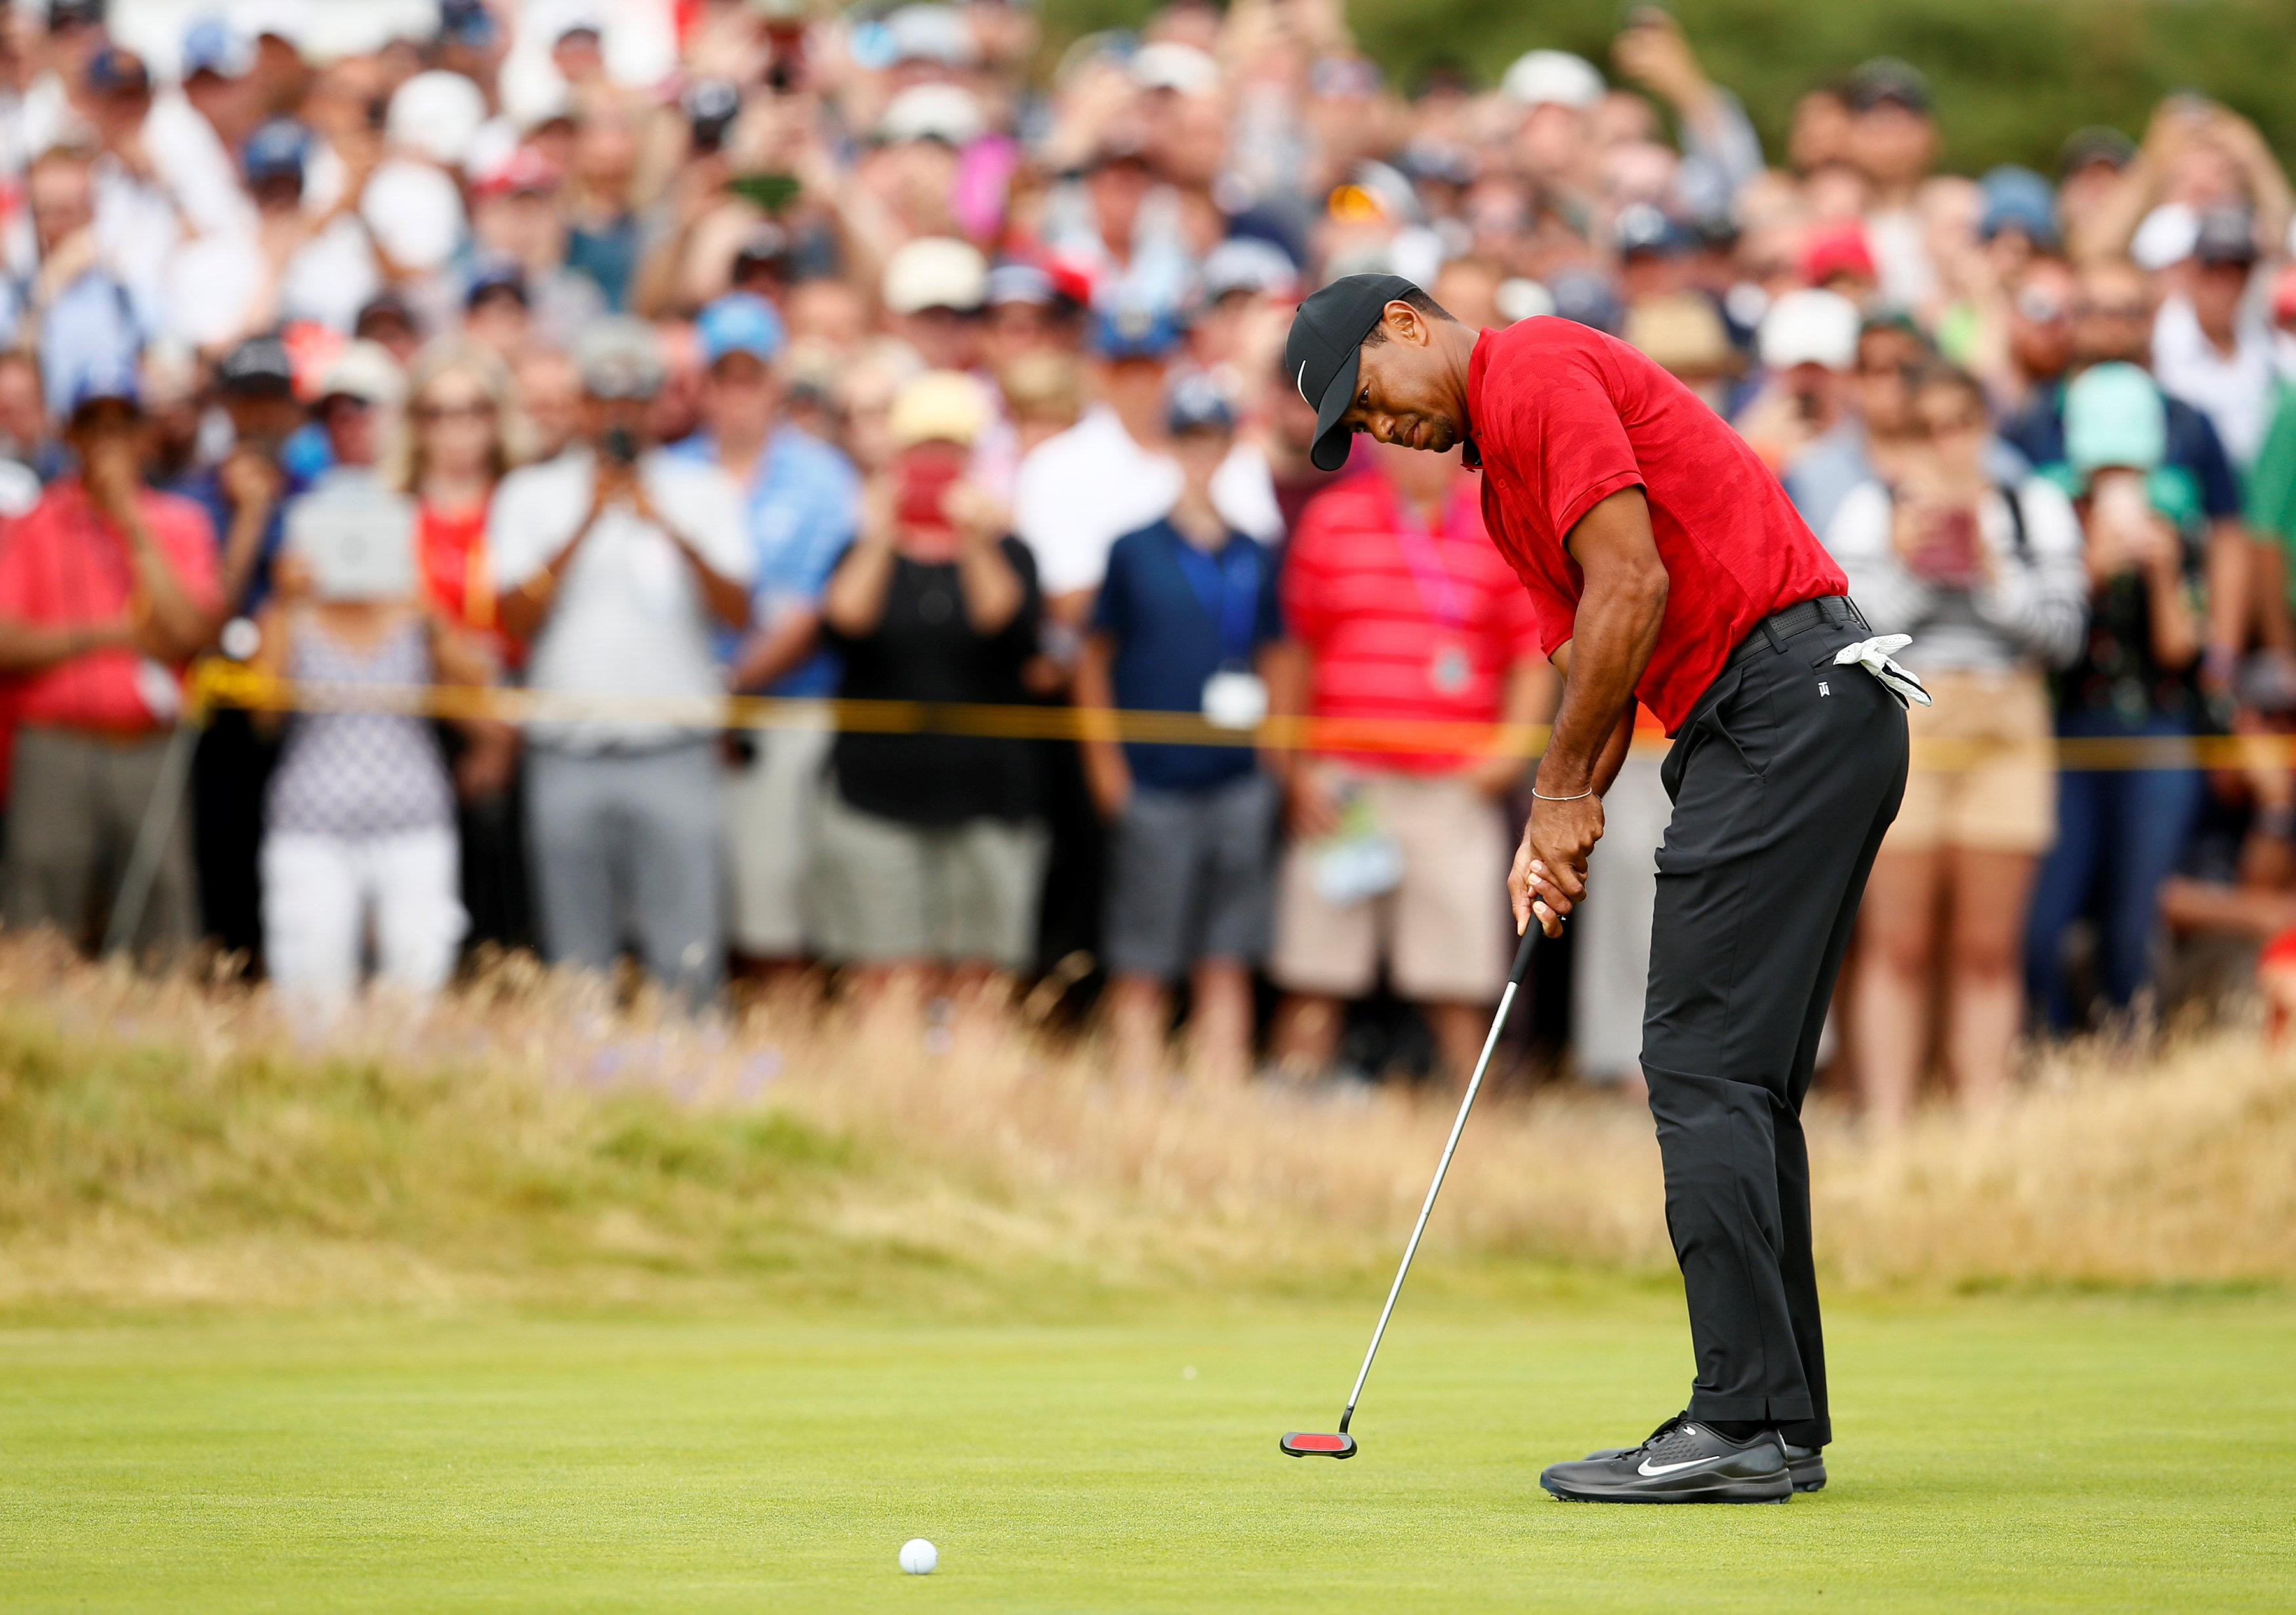 Woods will be looking to carry on his fine form in next month's PGA Championship